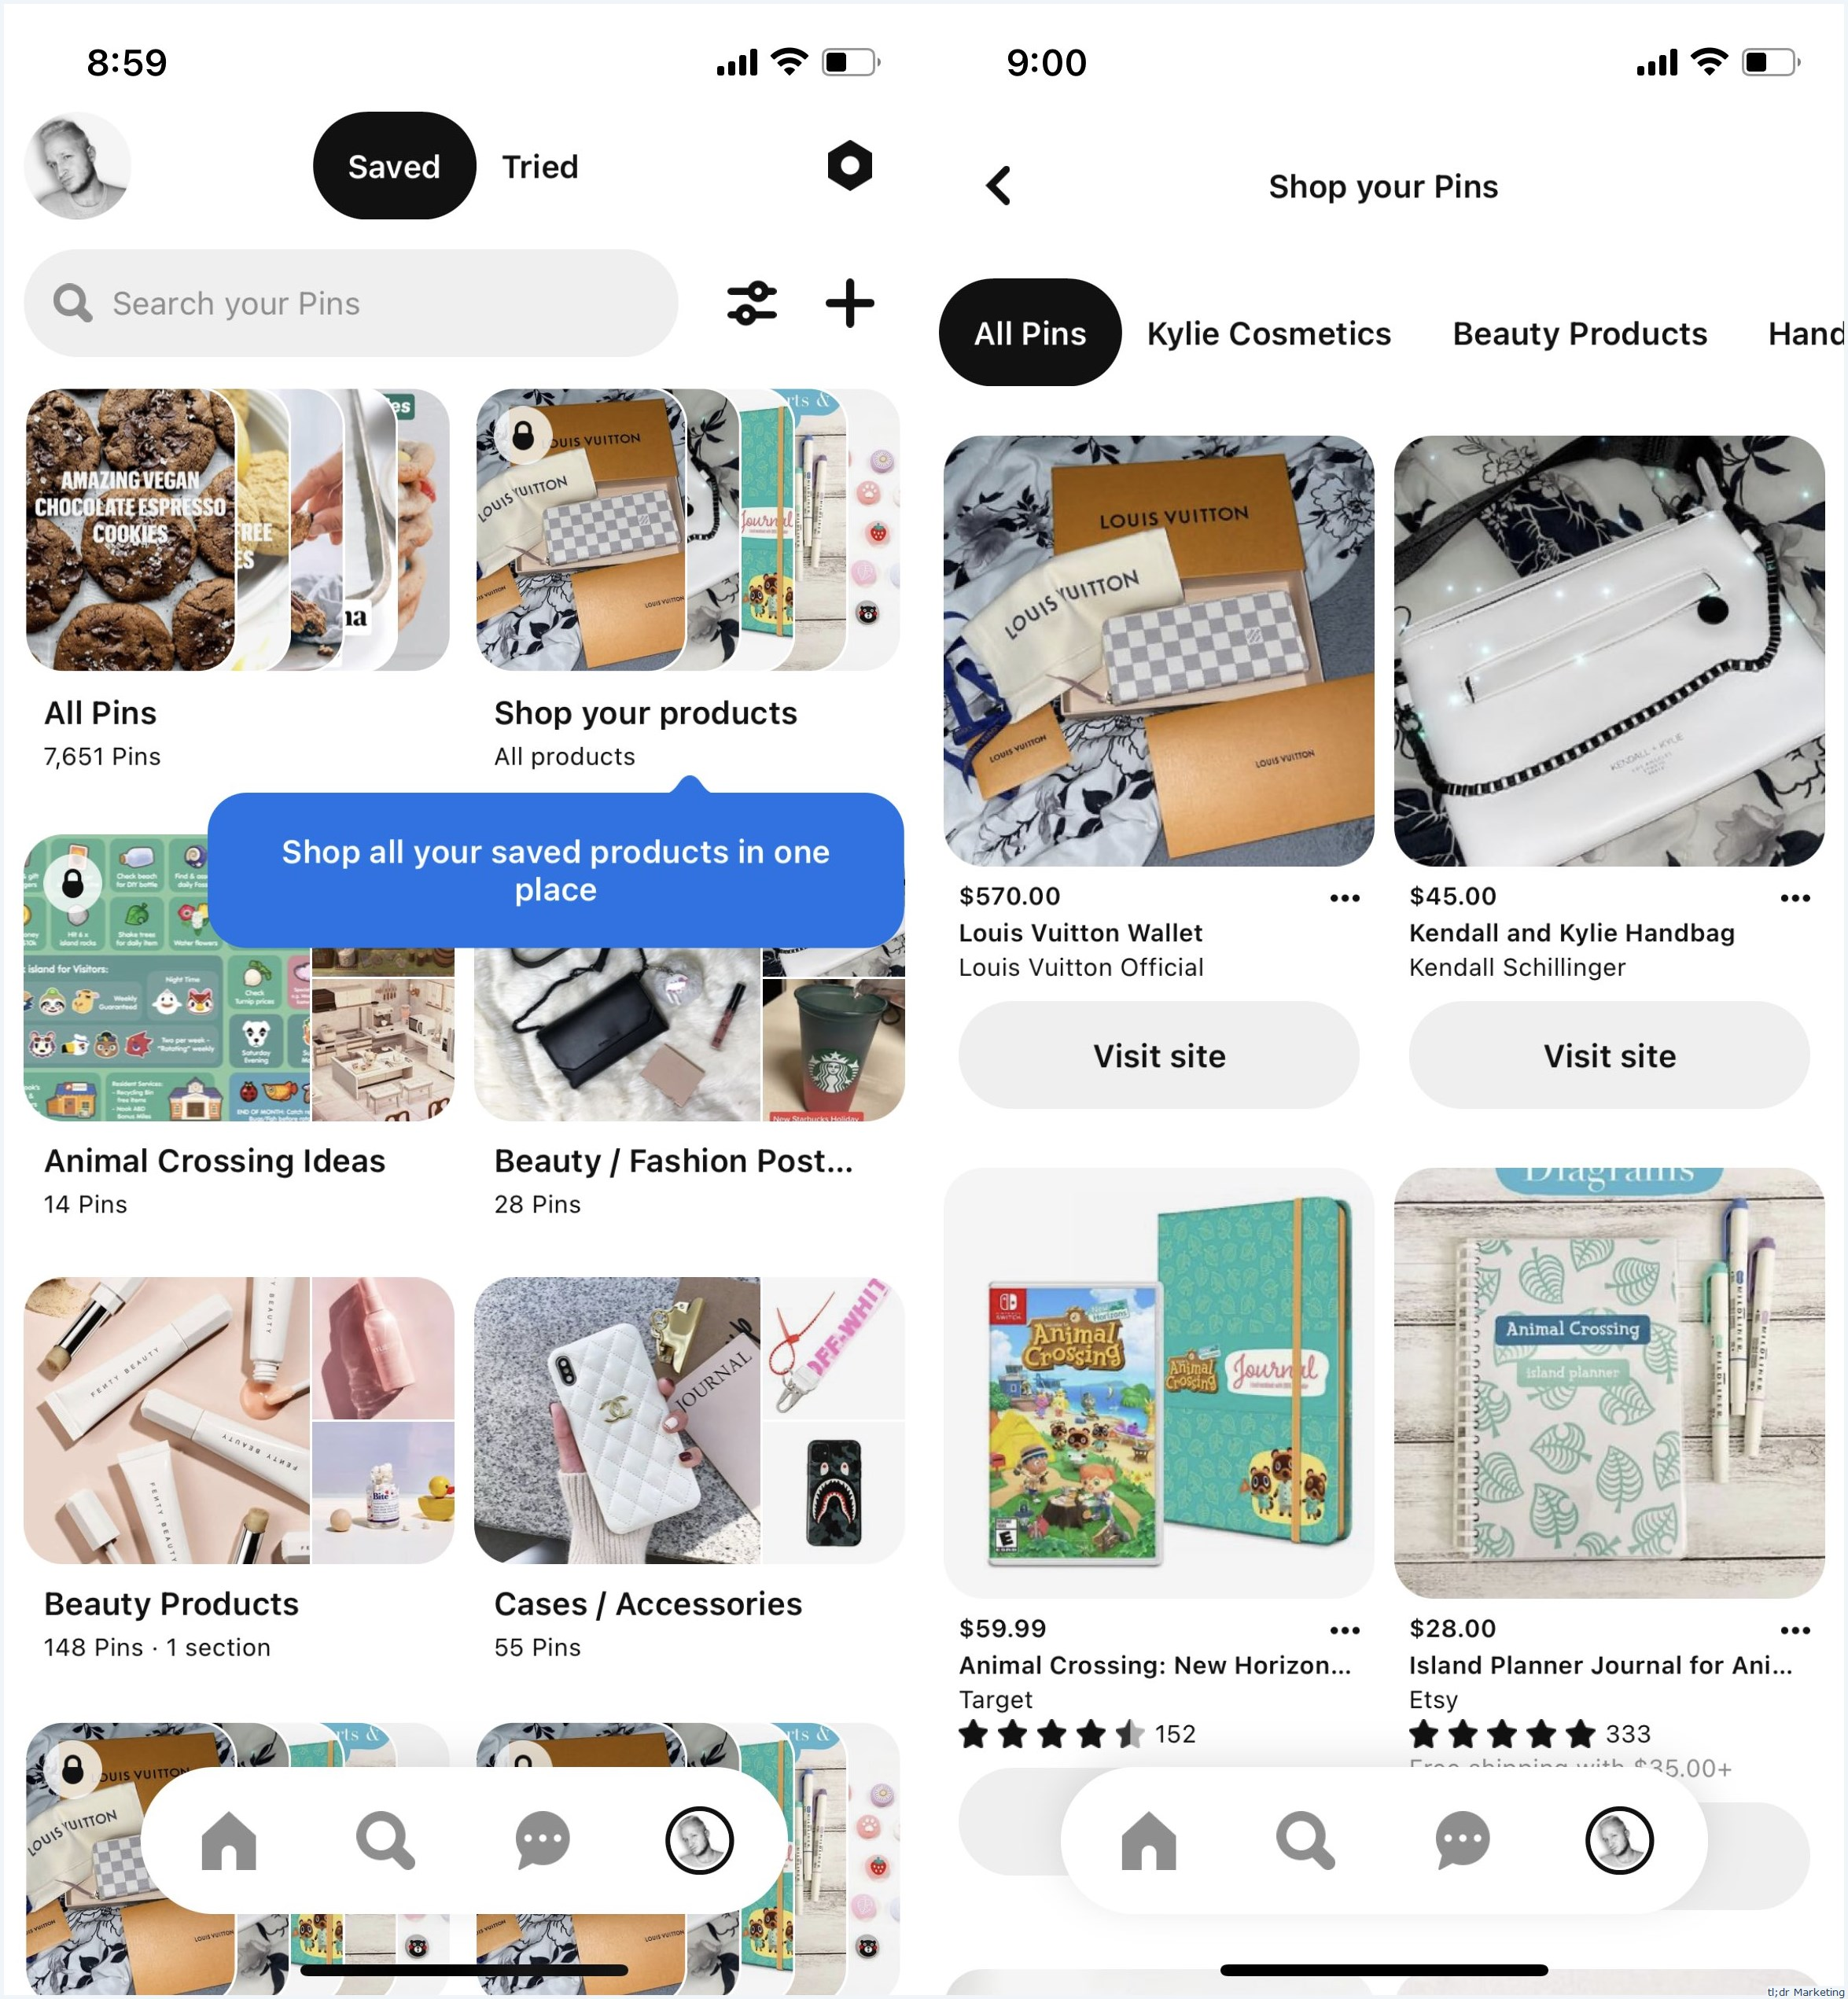 Pinterest Has a New Private Shopping Board Where You Can Access All Your Saved Shopping Pins